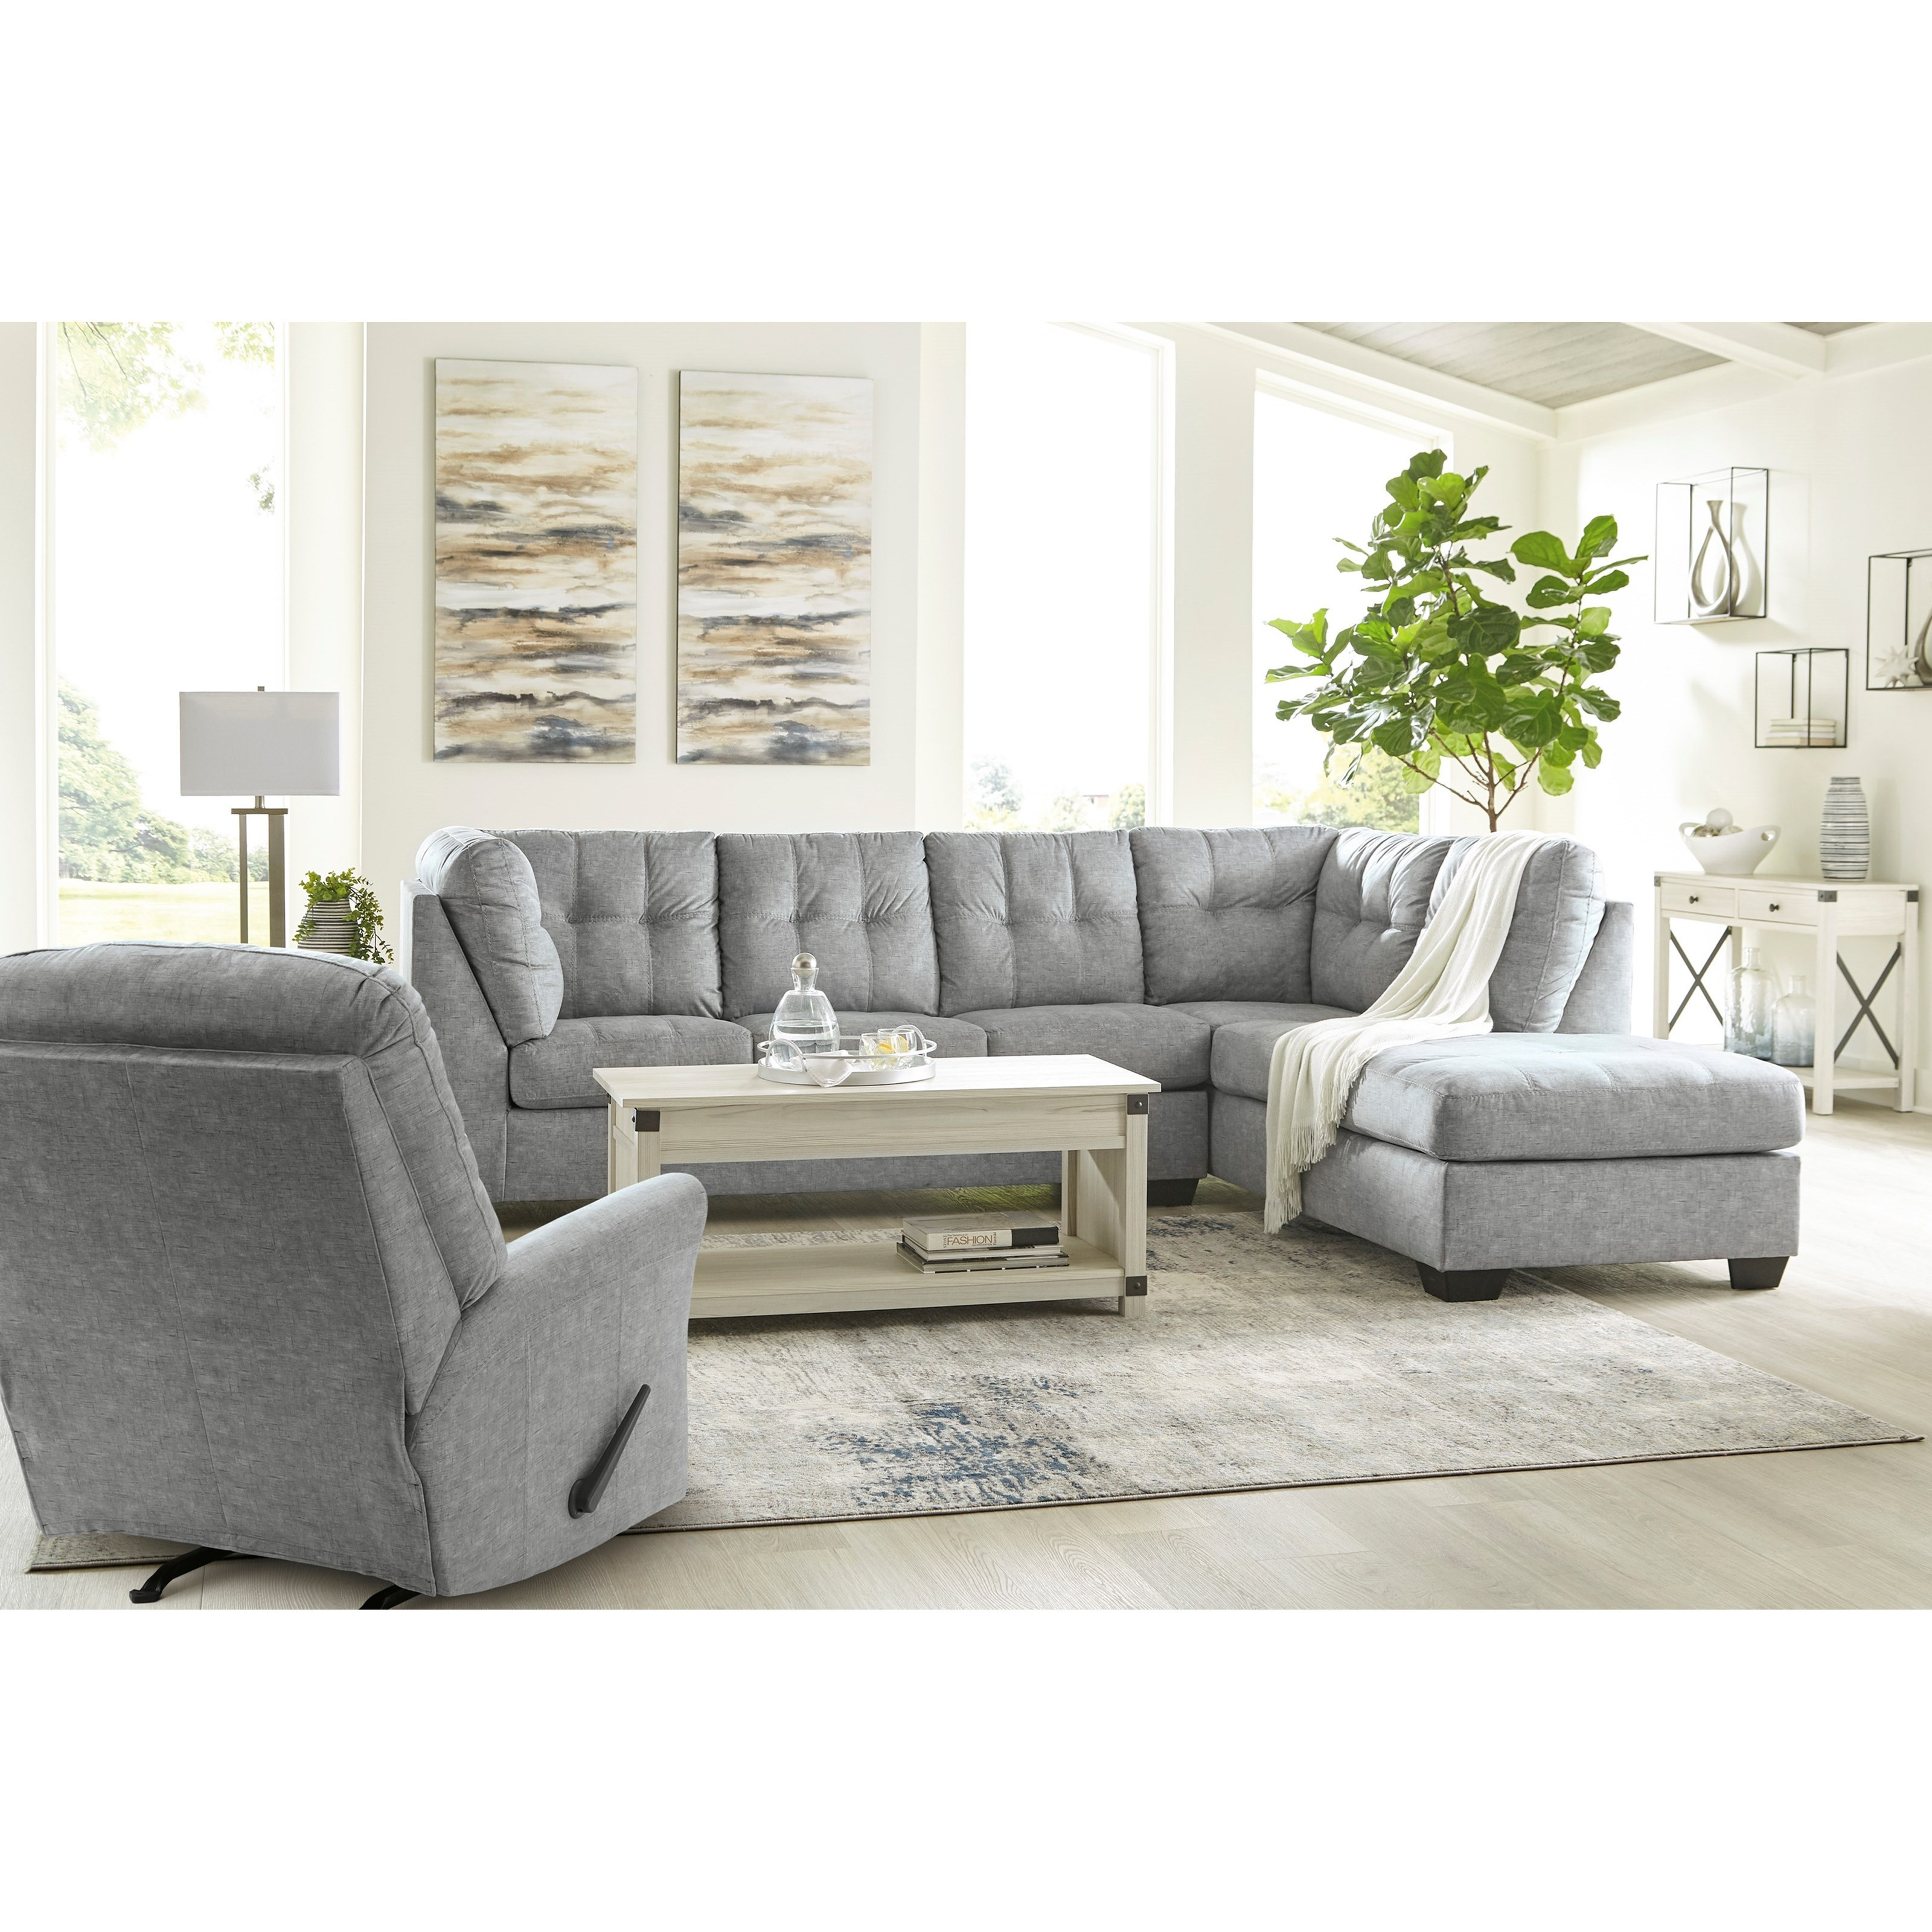 Falkirk Living Room Group by Benchcraft at Value City Furniture